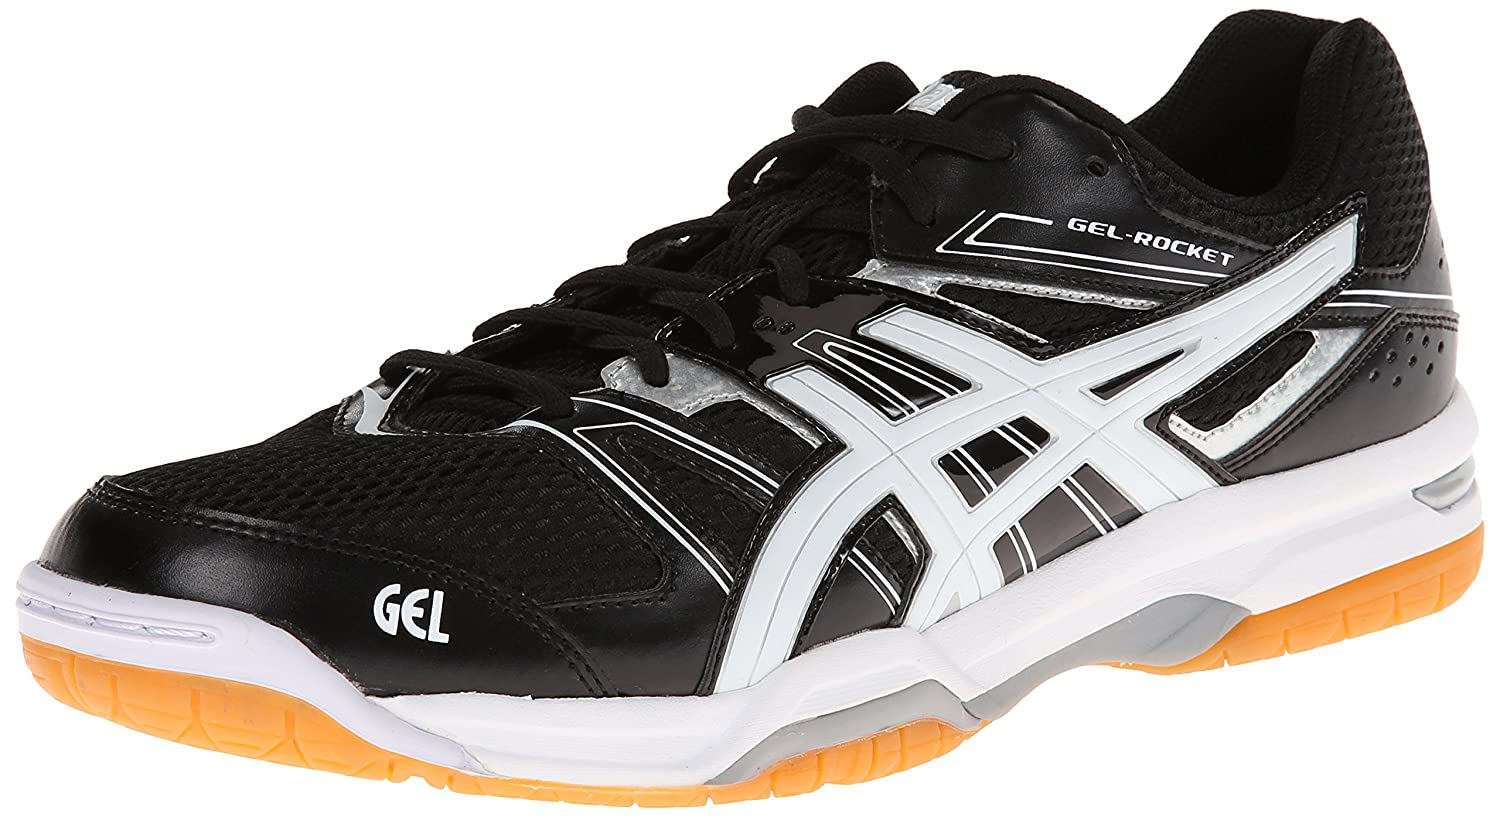 Asics Men's GEL-Rocket 7 Volleyball Shoe ASICS America Corporation GEL-Rocket 7-M